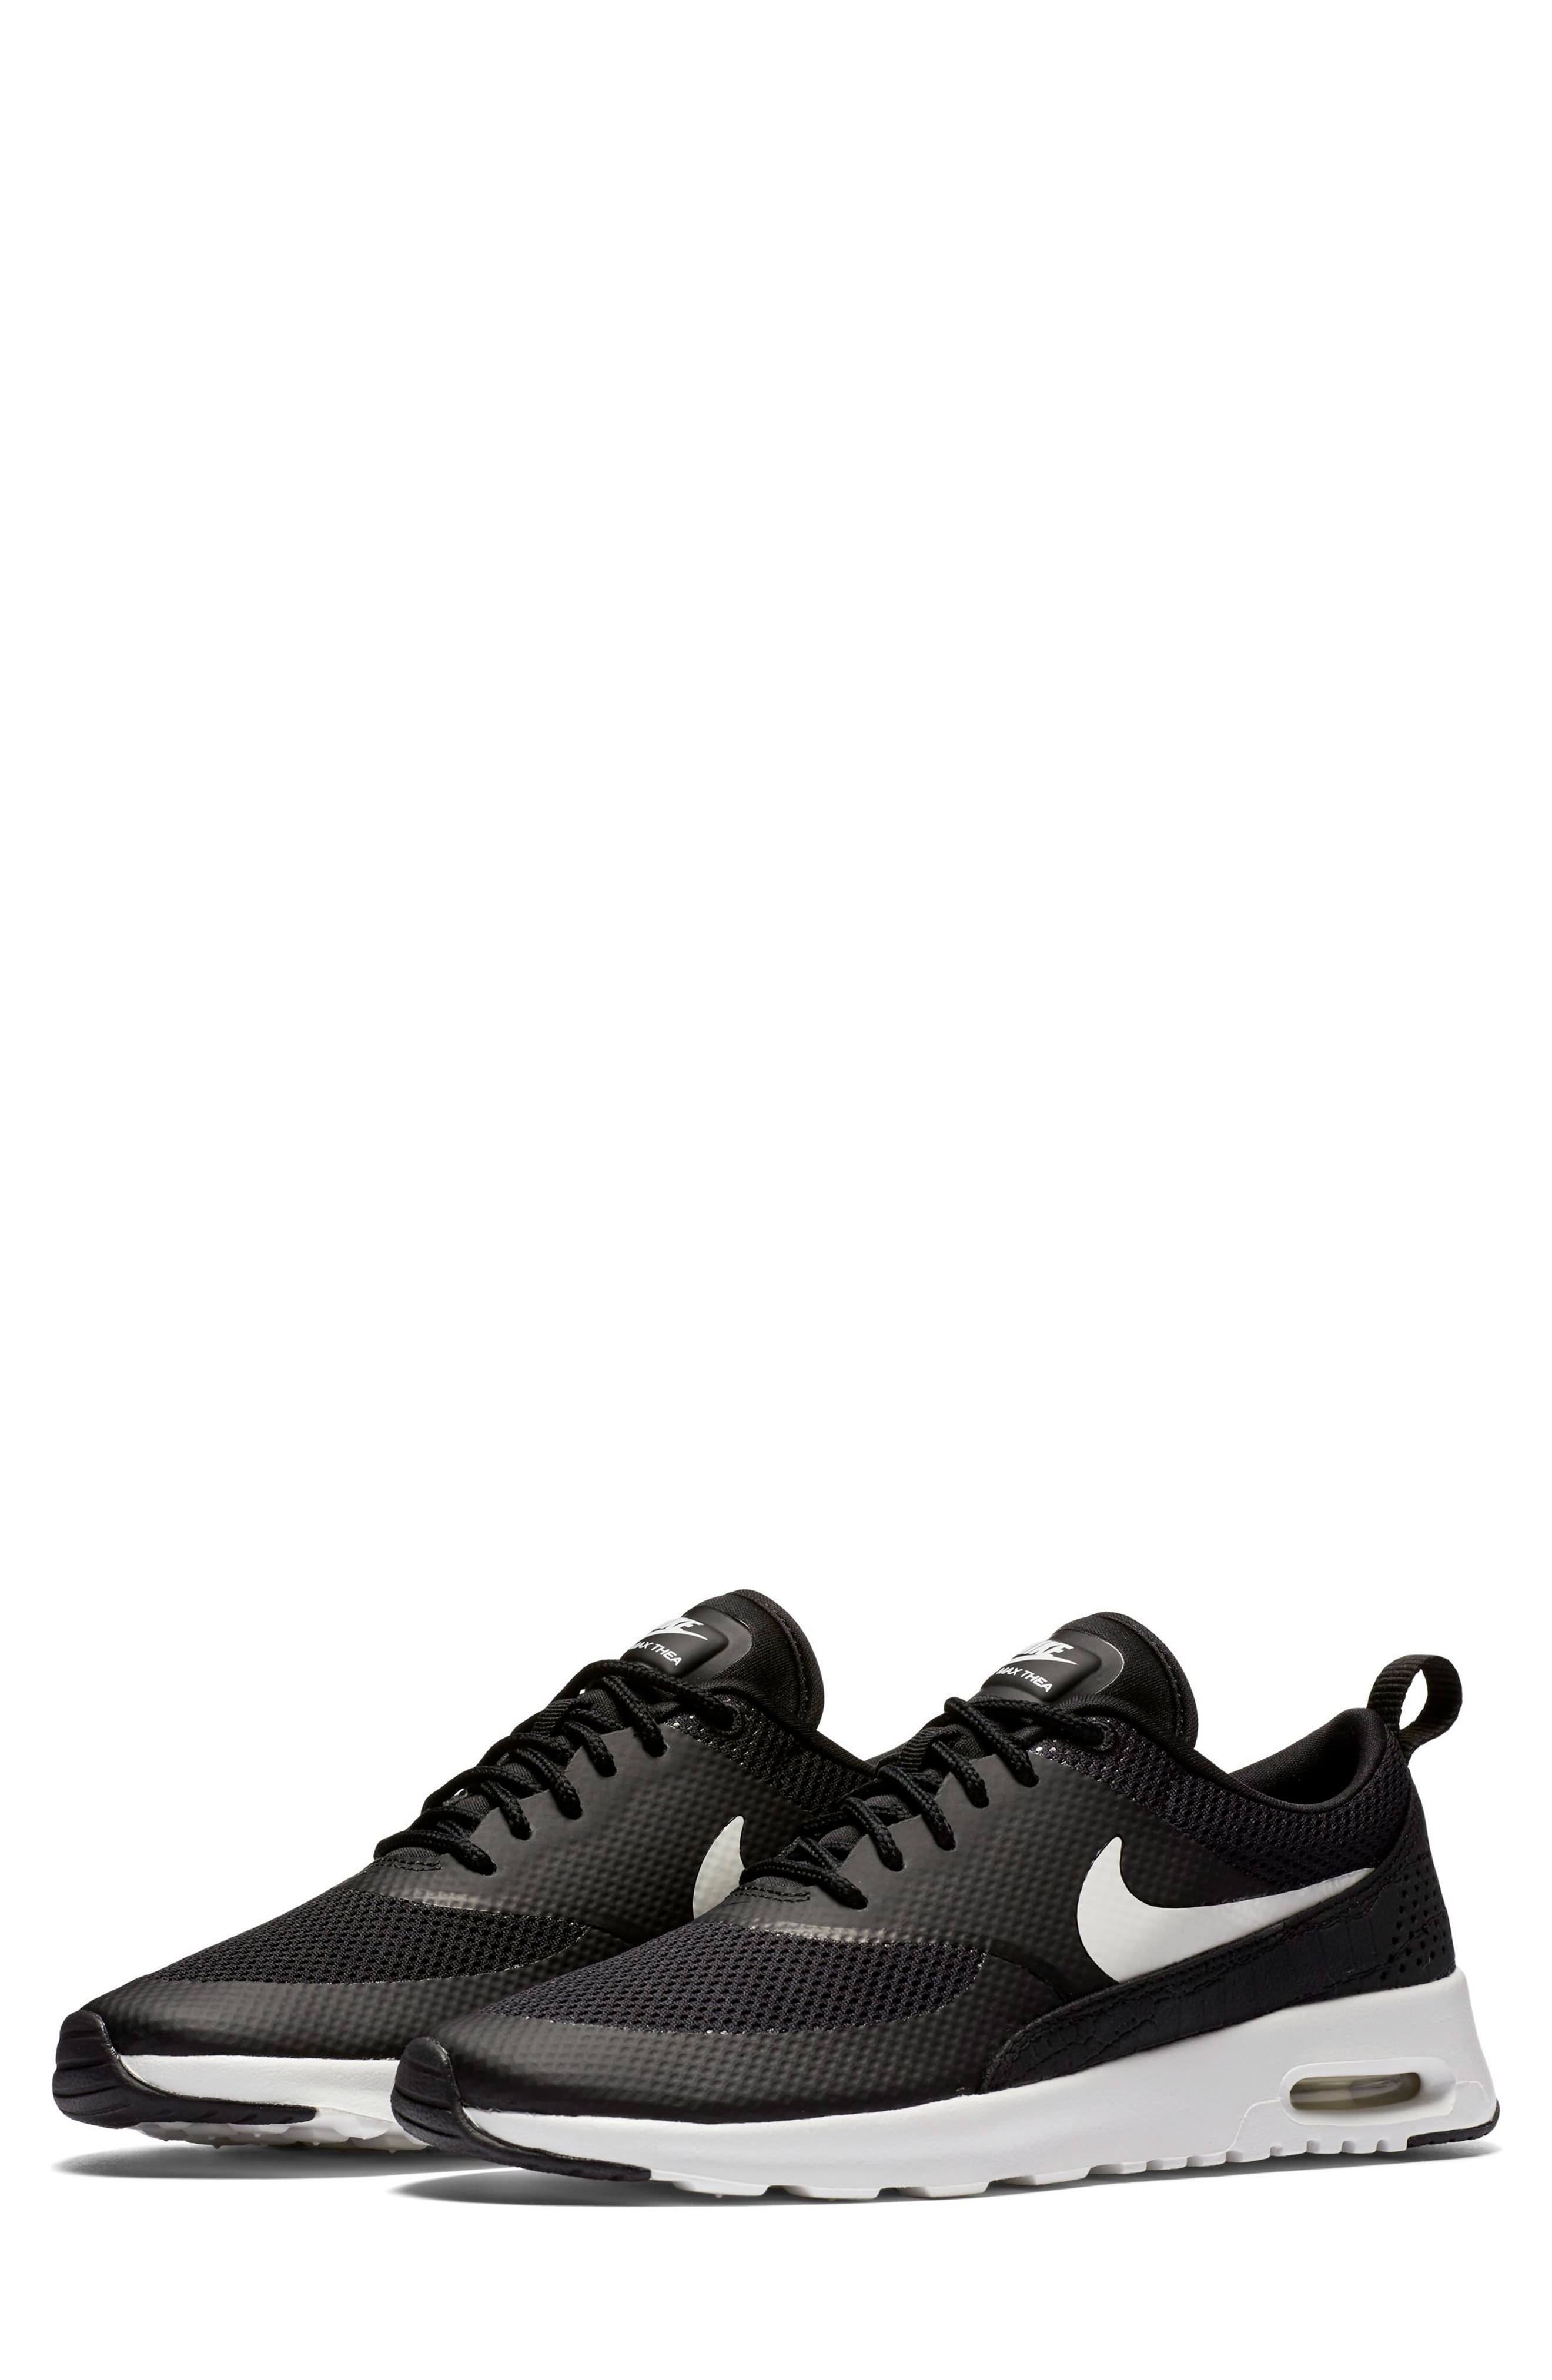 Air Max Thea Sneaker,                             Main thumbnail 1, color,                             Black/ Summit White